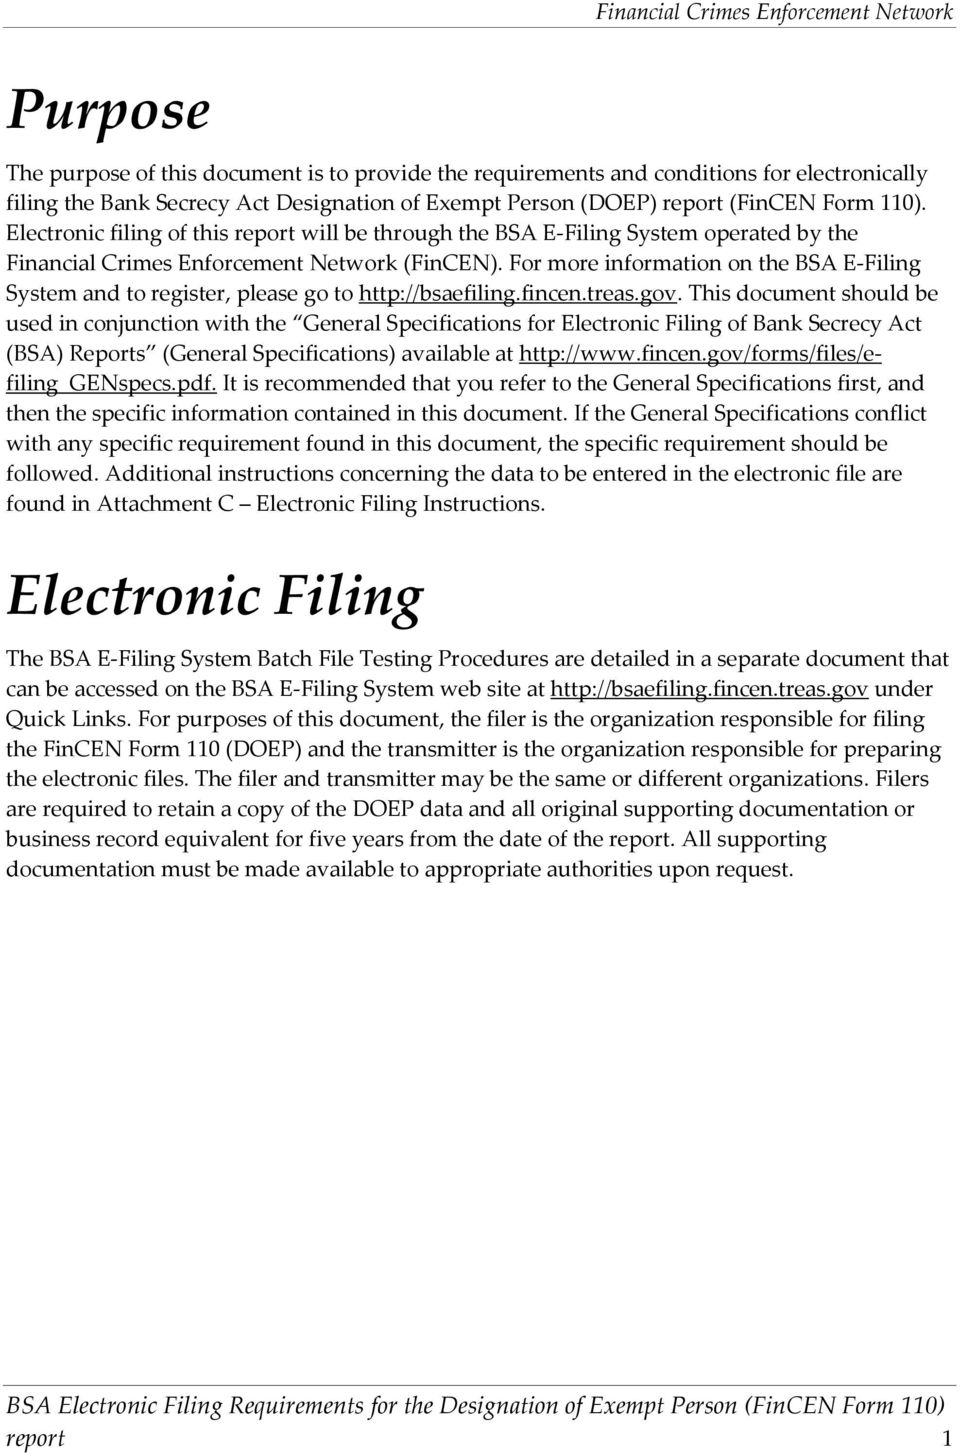 For more information on the BSA E Filing System and to register, please go to http://bsaefiling.fincen.treas.gov.